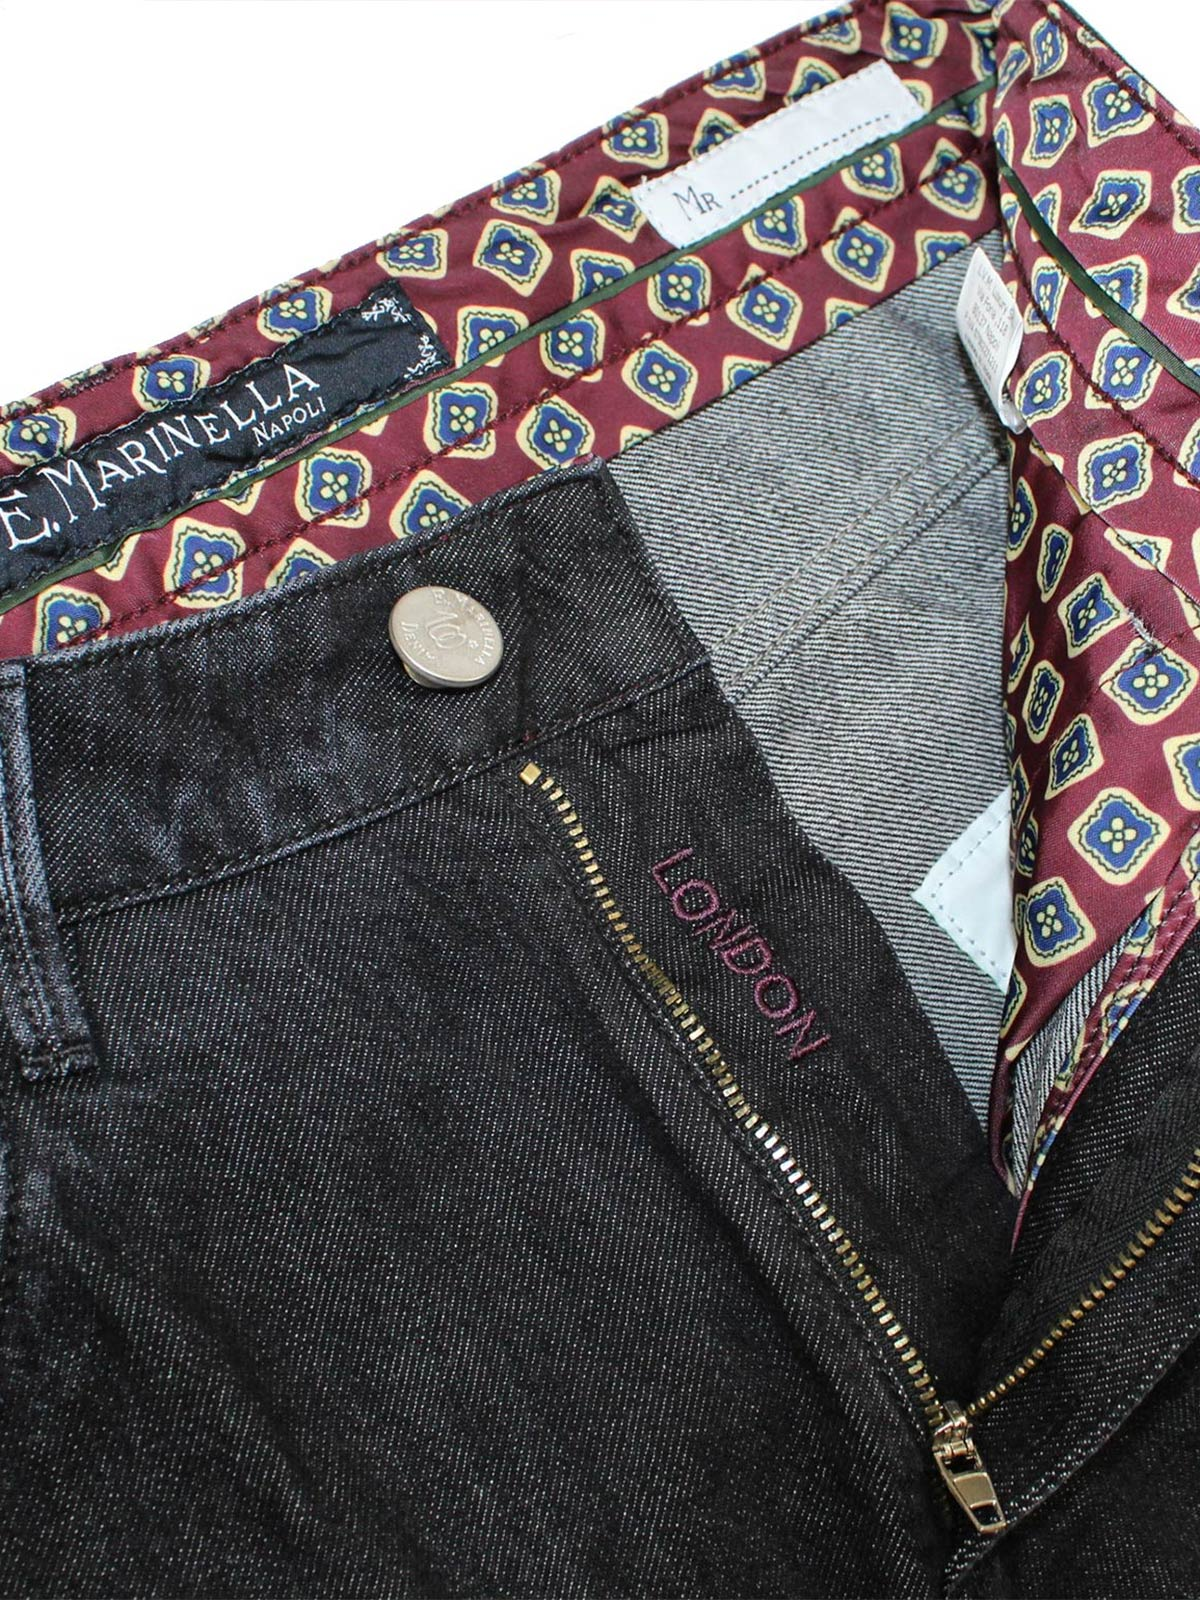 E. Marinella Jeans Black Denim Jeans